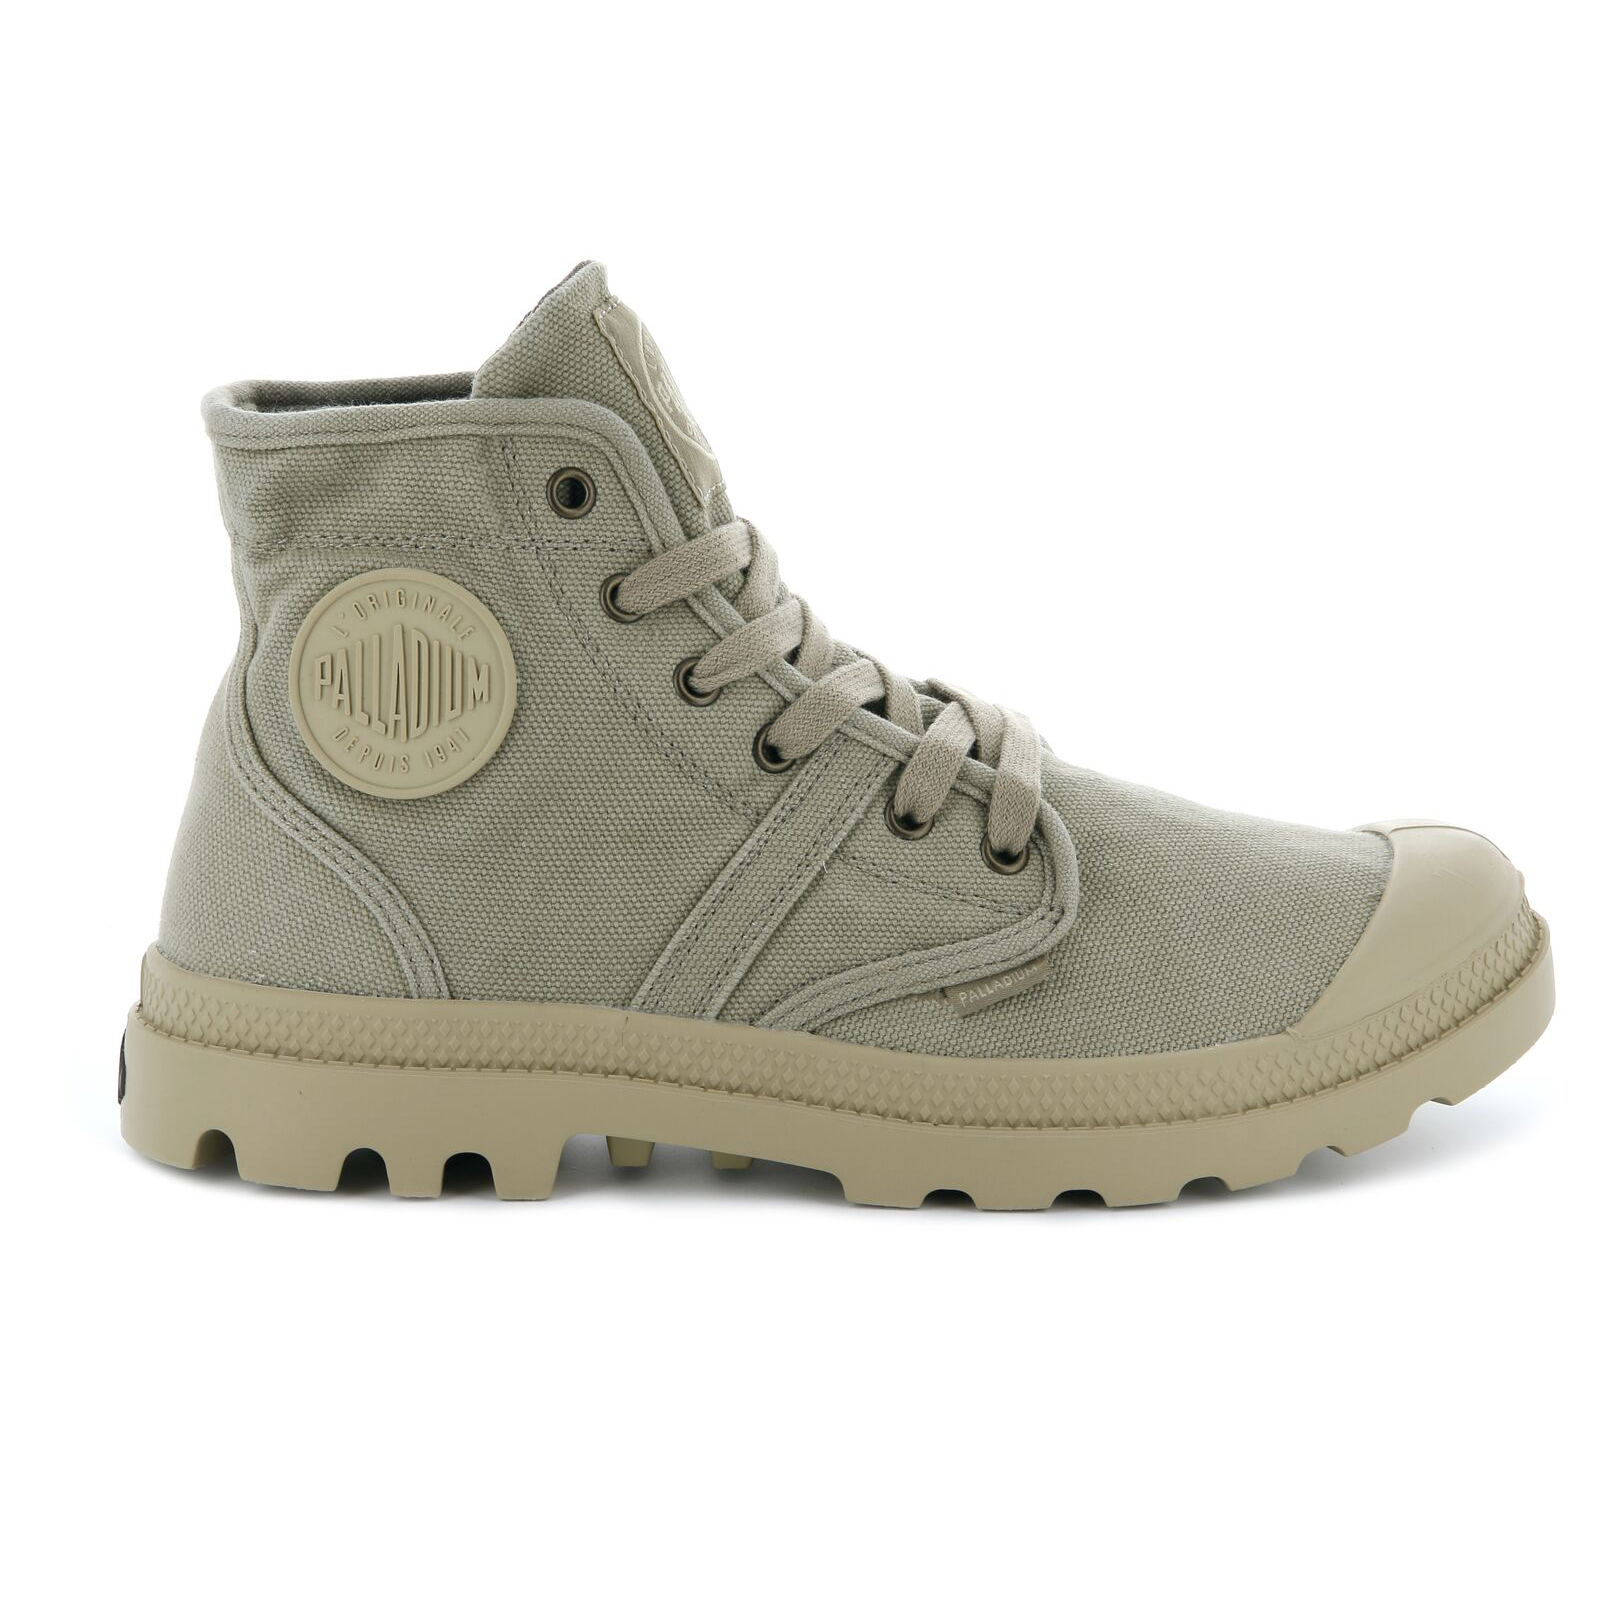 Palladium-Mens-Shoe-Pallabrouse-New-Designer-Walking-High-Top-Canvas-Ankle-Boots thumbnail 23